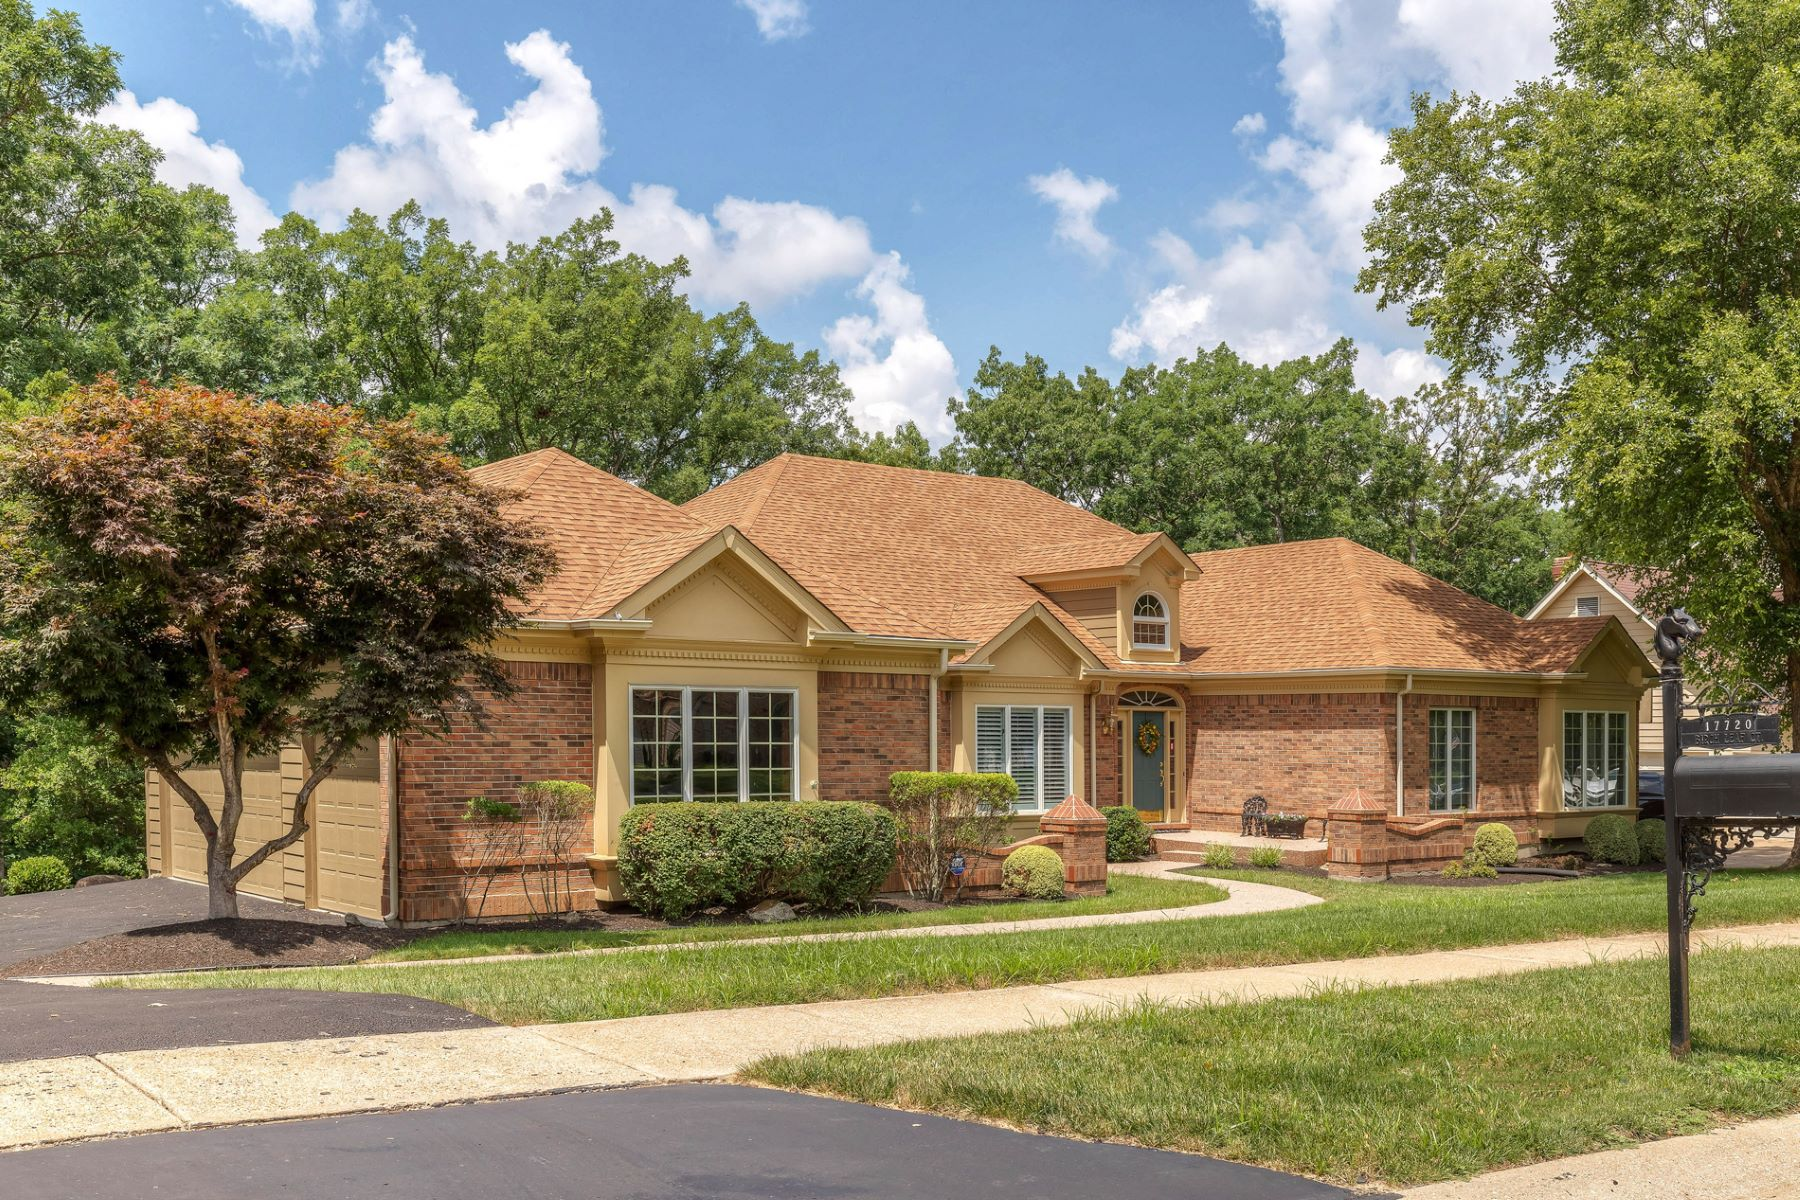 Single Family Home for Sale at Birch Leaf Ct 17720 Birch Leaf Ct Wildwood, Missouri 63005 United States